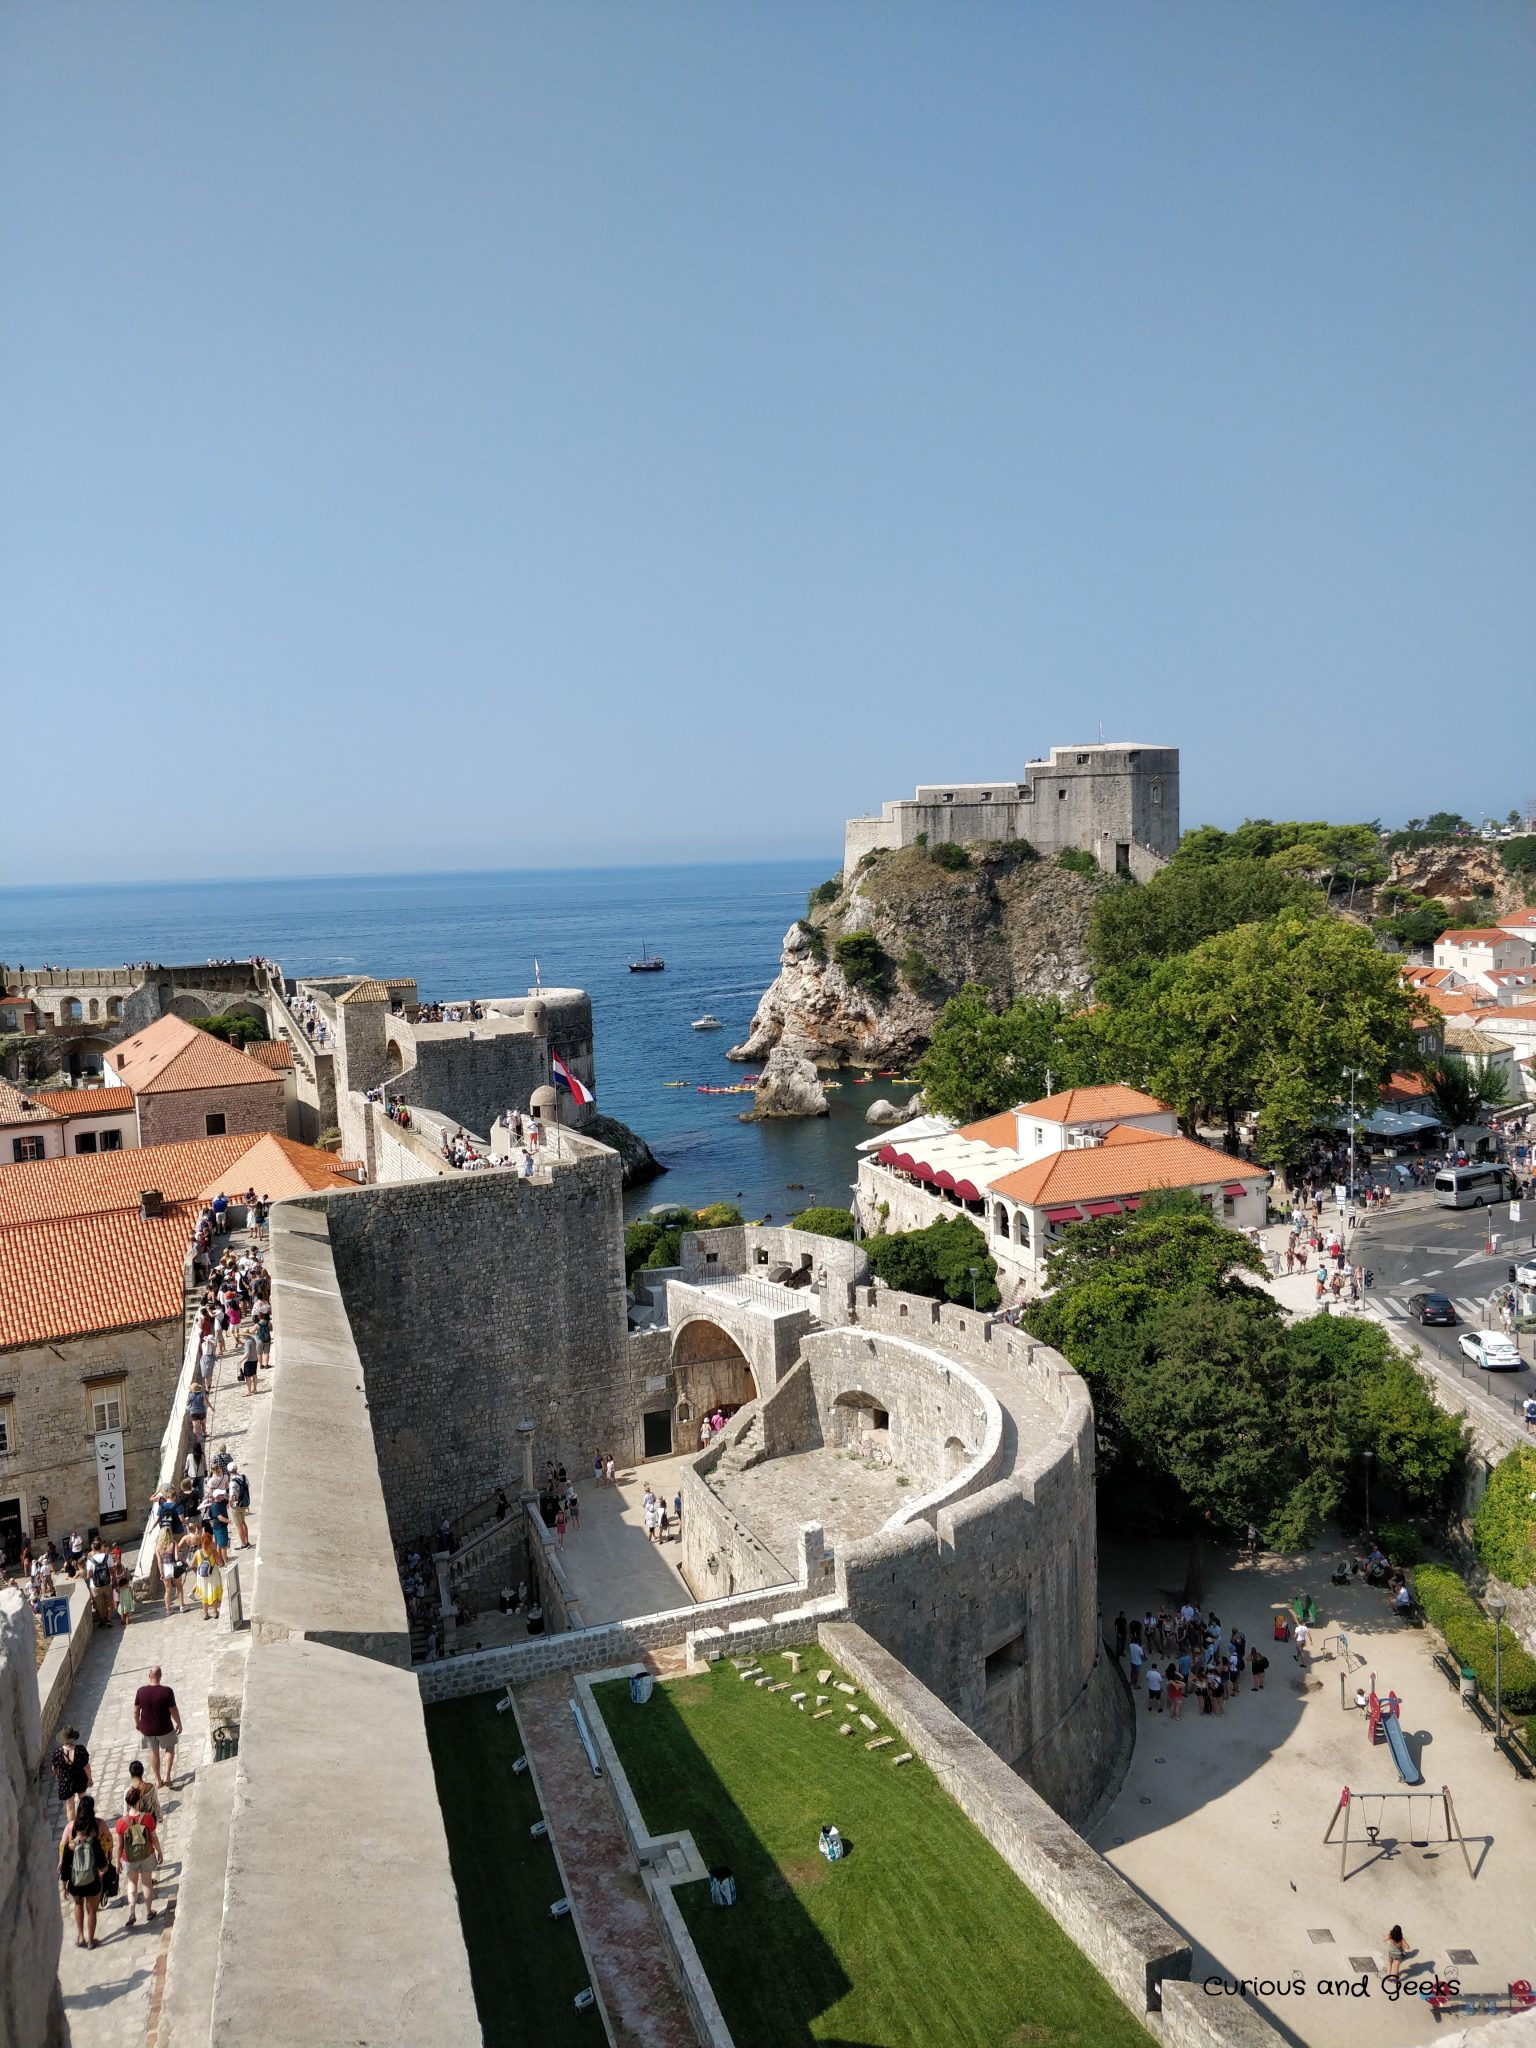 View from the city walls in Dubrovnik - filming location for s04e07 of Game of Thrones